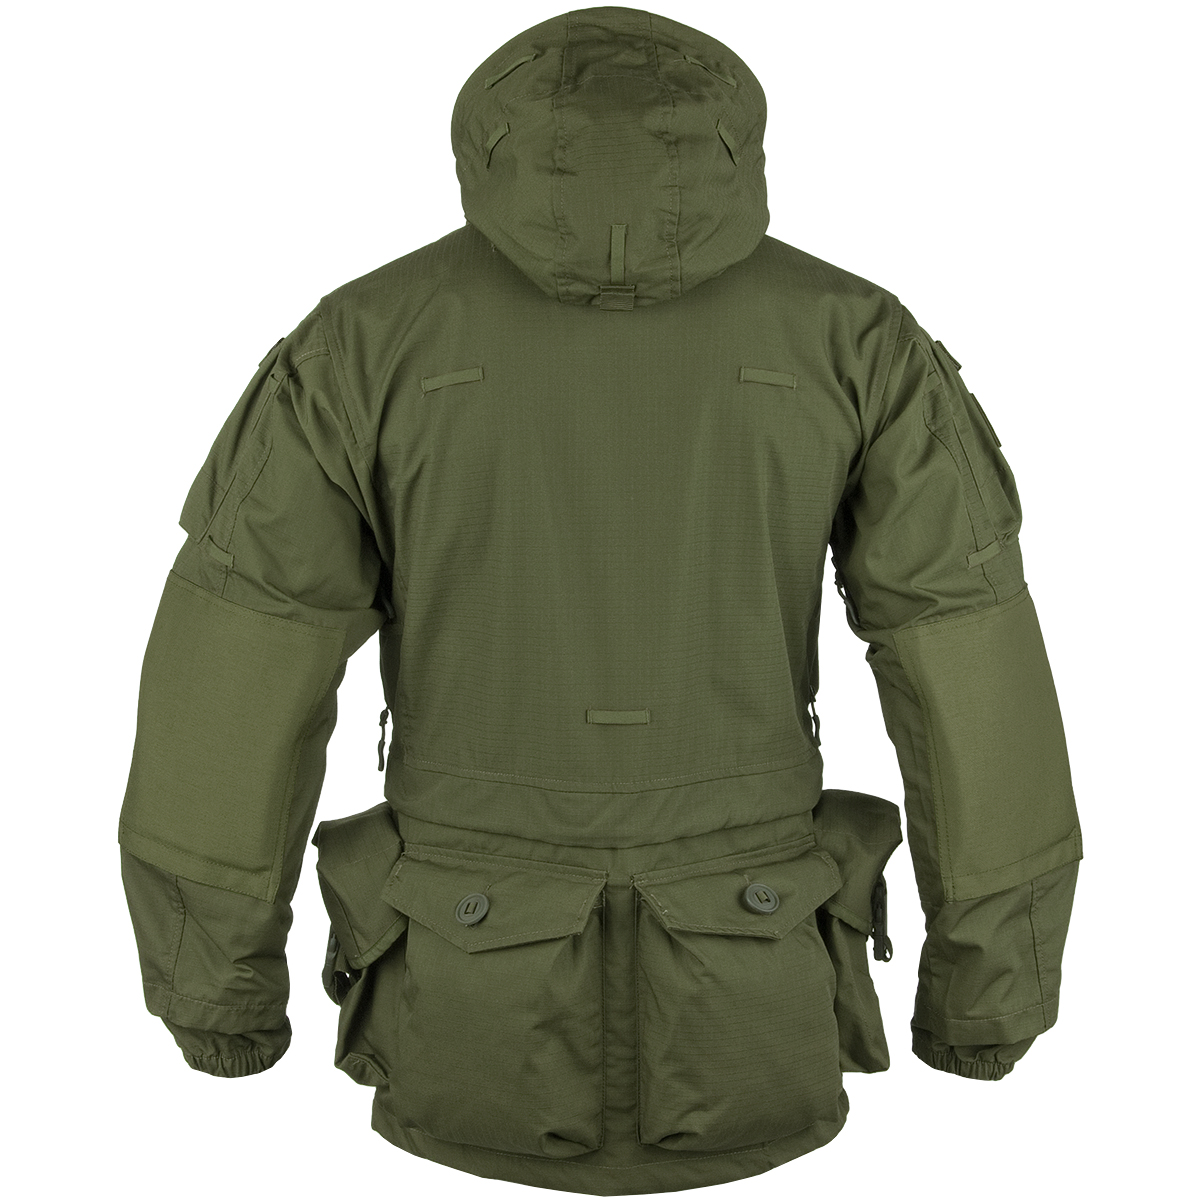 Teesar Army Smock Generation Ii Military Mens Hunting